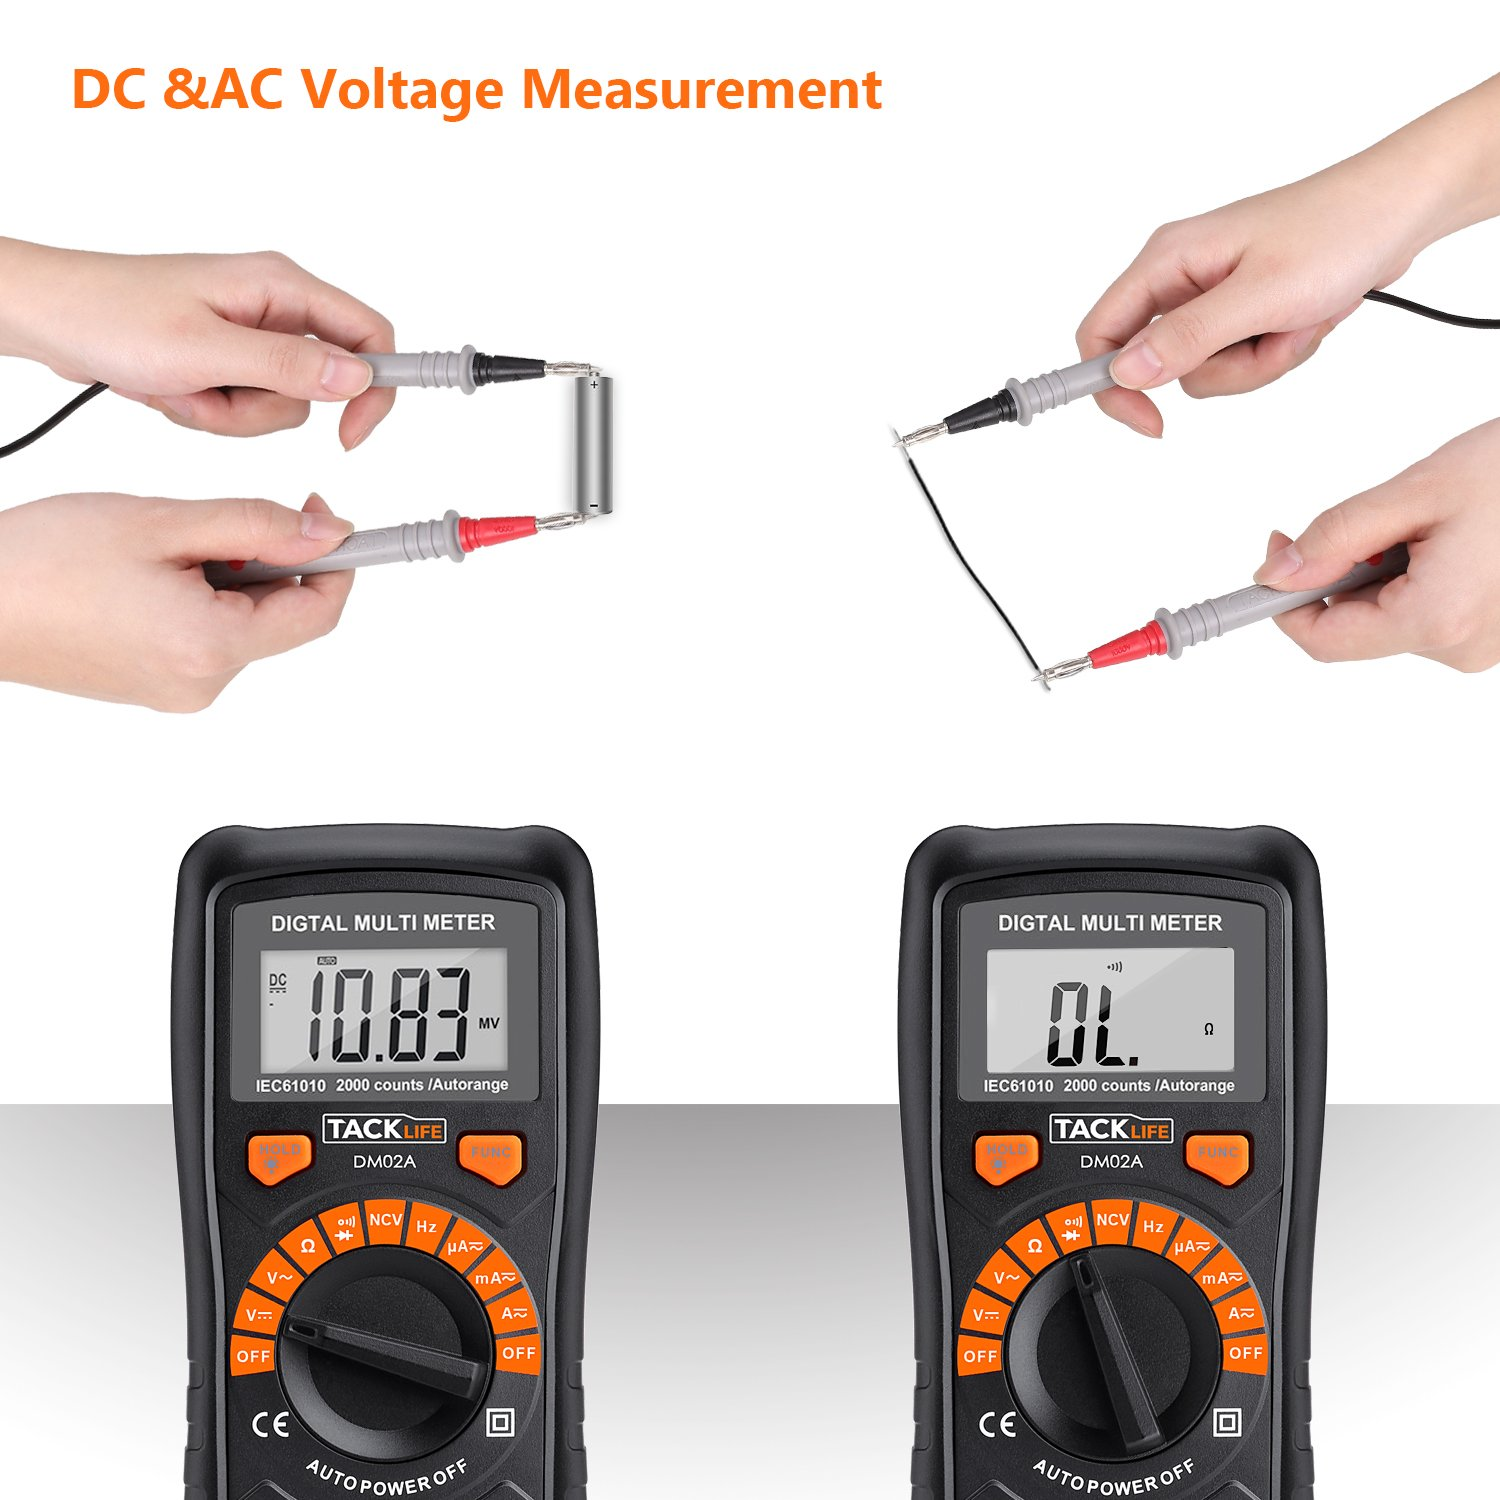 Multimeter Tacklife DM02S Auto-Ranging Digital Multimeters NCV Electrical Tester Multimeter Tester Volt Amp Ohm Diode, Continuity Test Meter LCD Backlight Measurement Tools with Screwdriver by TACKLIFE (Image #4)